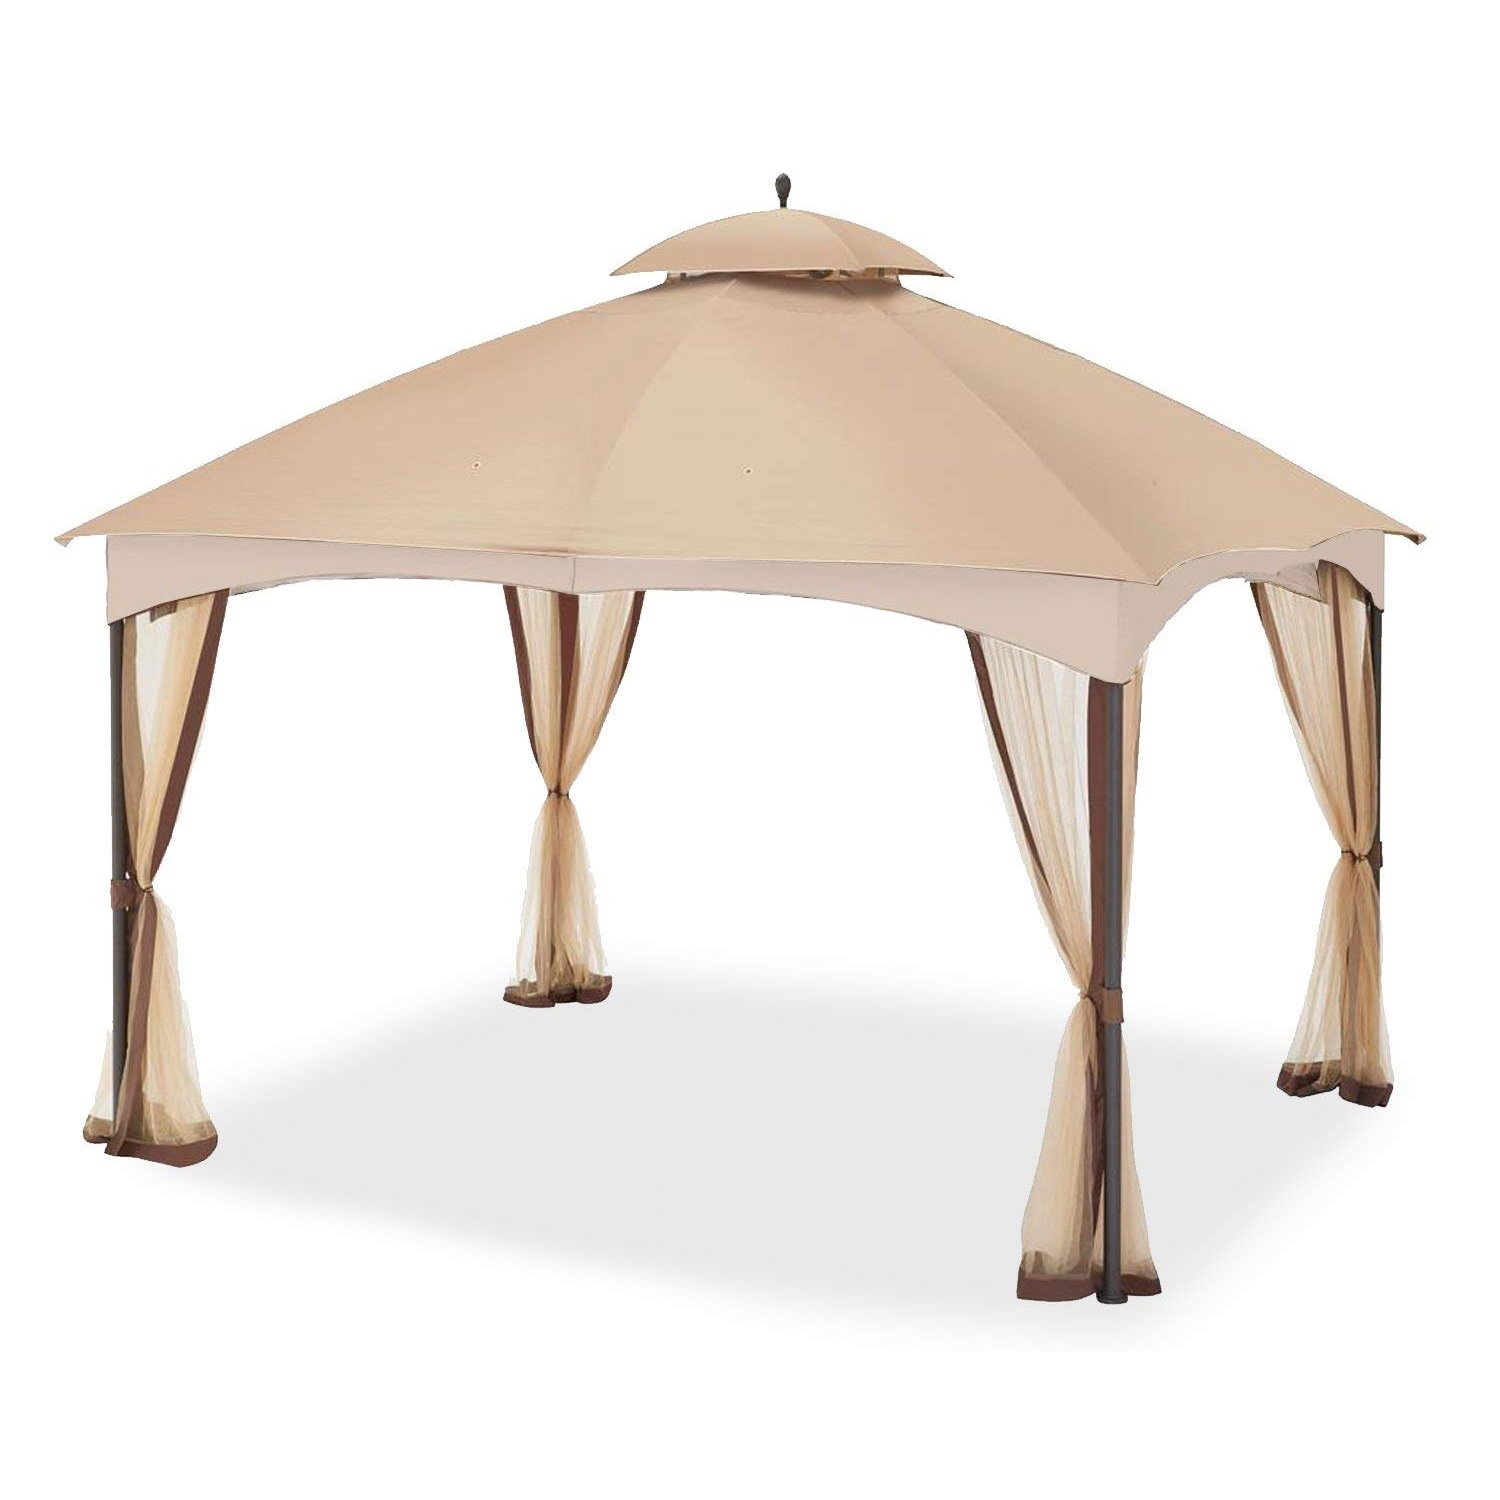 Garden Winds Replacement Canopy Top Cover for The Massillon Biscayne 10' x 12' Gazebo - 350 2009378